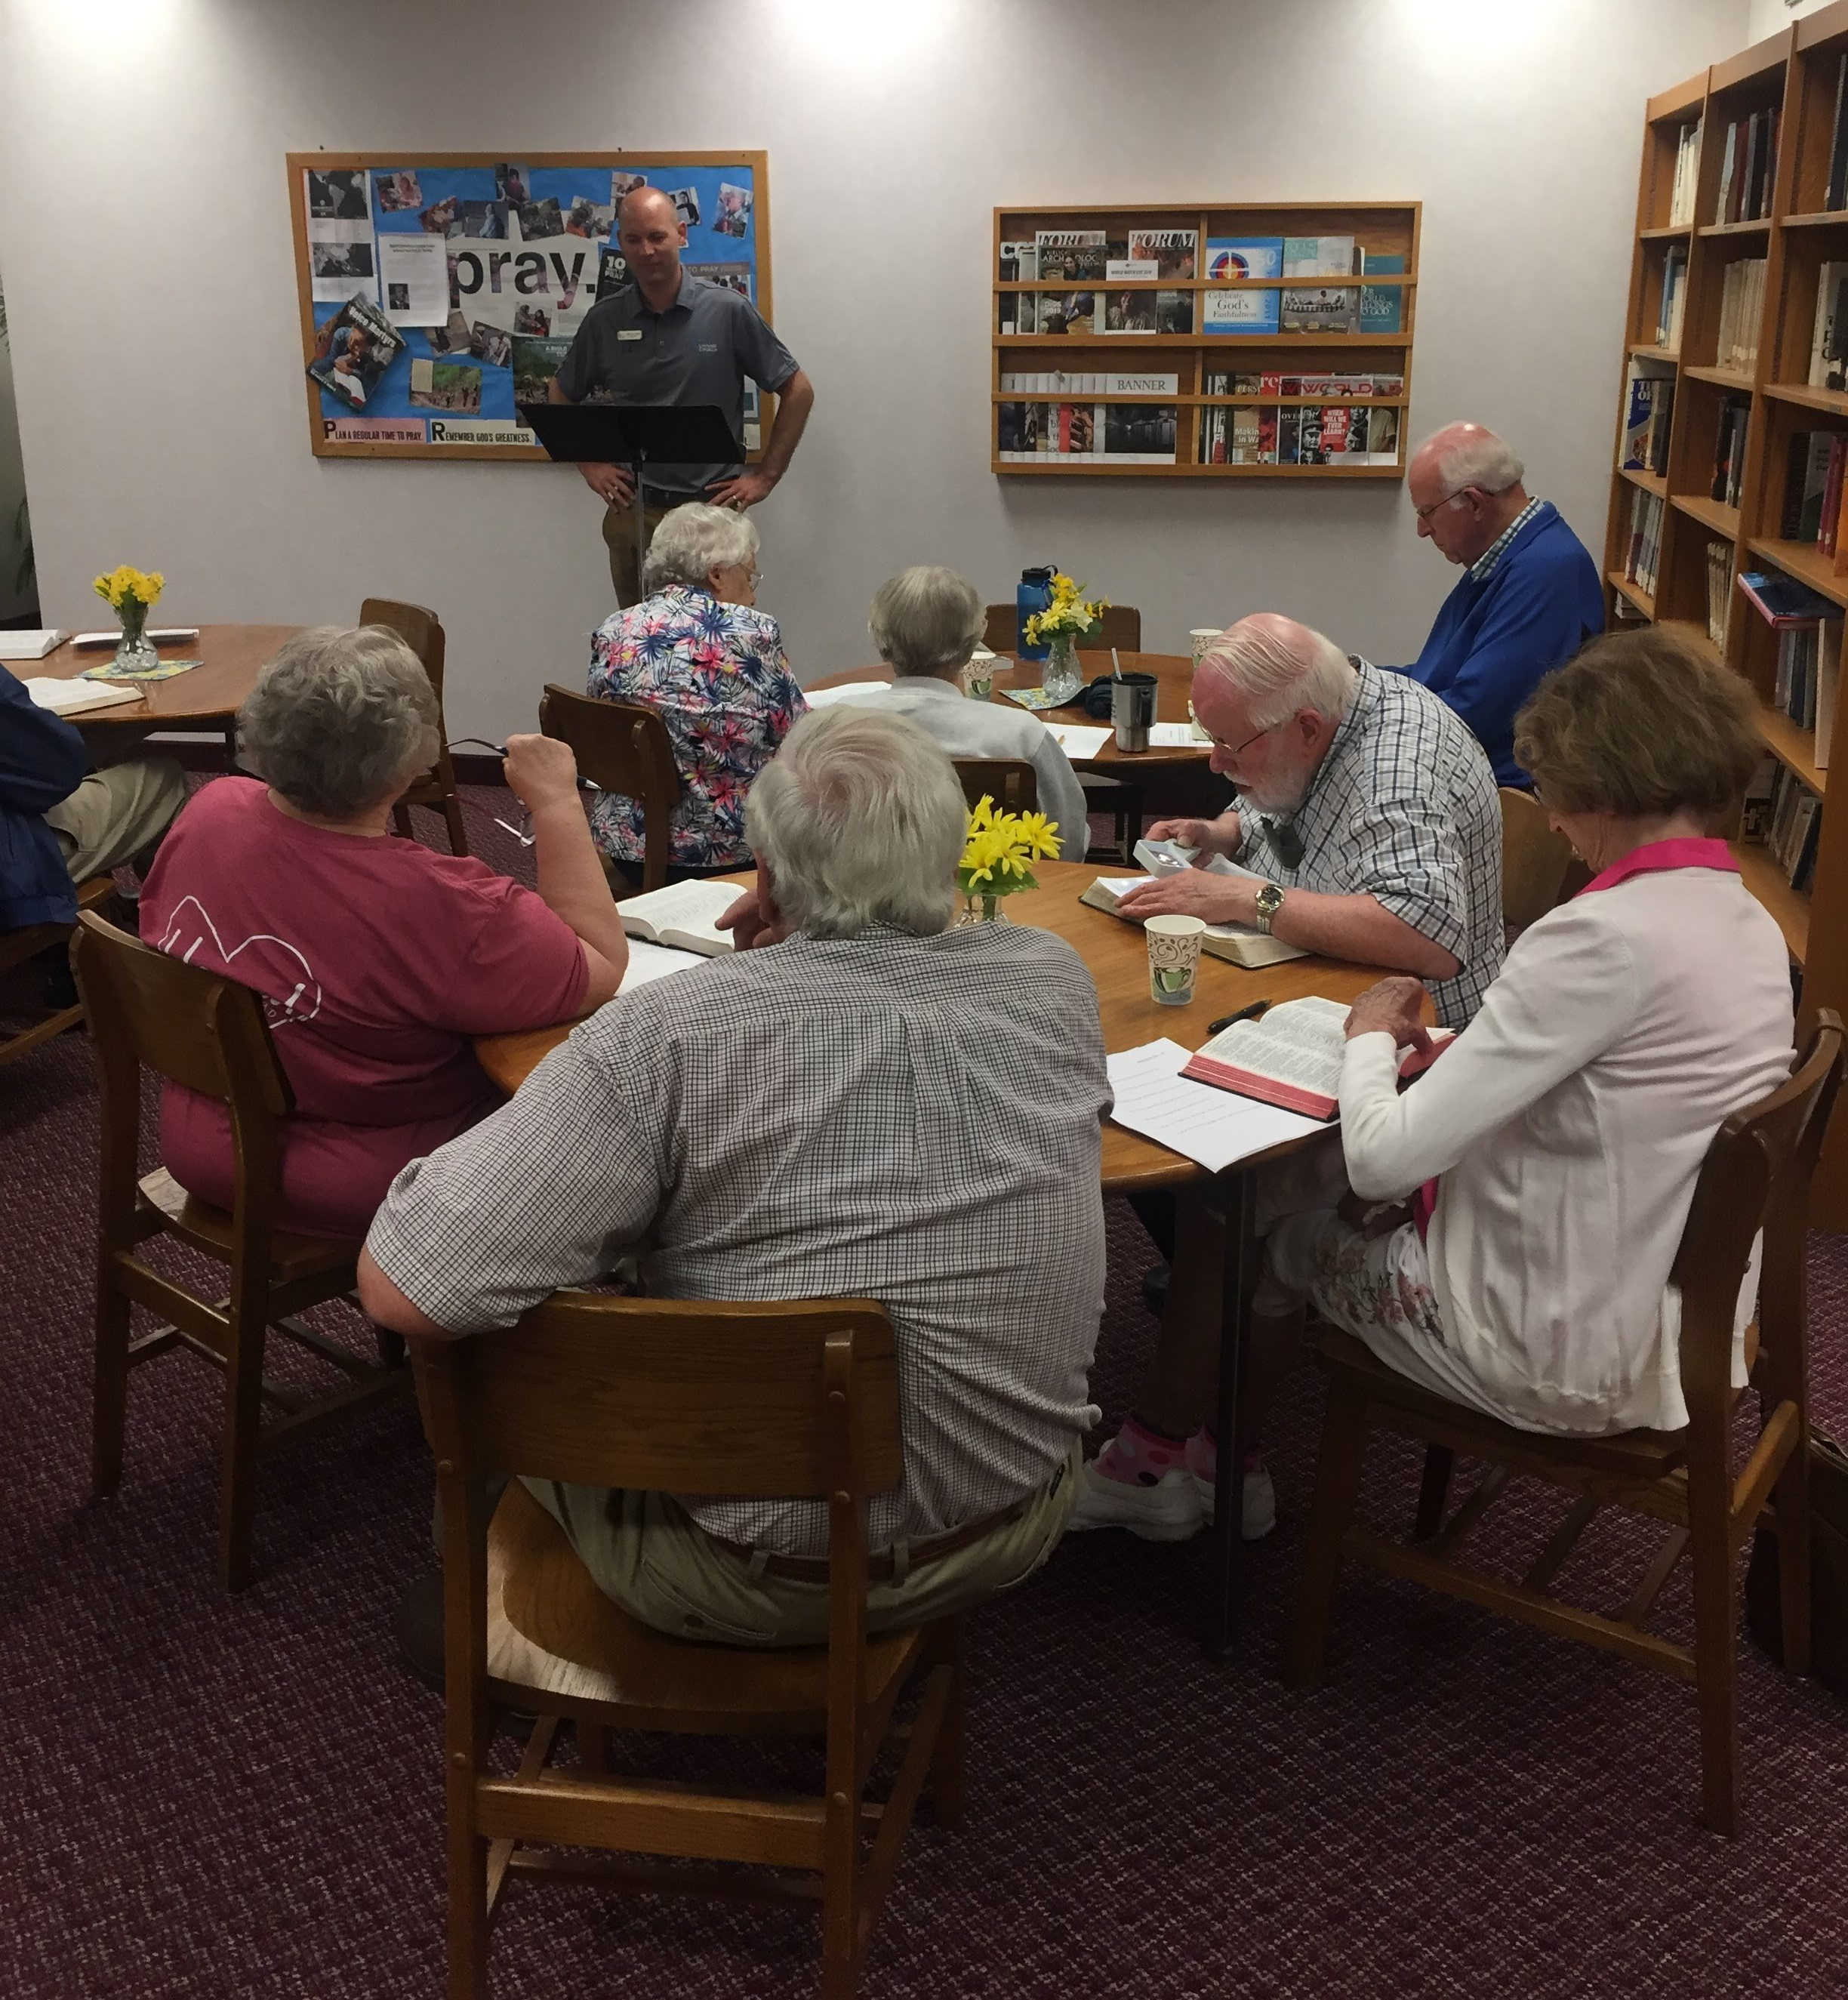 Senior Adventures - Senior citizens gather in Calvary's library the 2nd Tuesday of each month at 1:00 pm to study Scripture passages related to Sunday's sermon. Pastor Nick leads the group because he loves sharing God's Word with others and being blessed by sharing the study and conversations.Contact Pastor Nick at pastornick@calvarycrc.net for Senior Adventures.